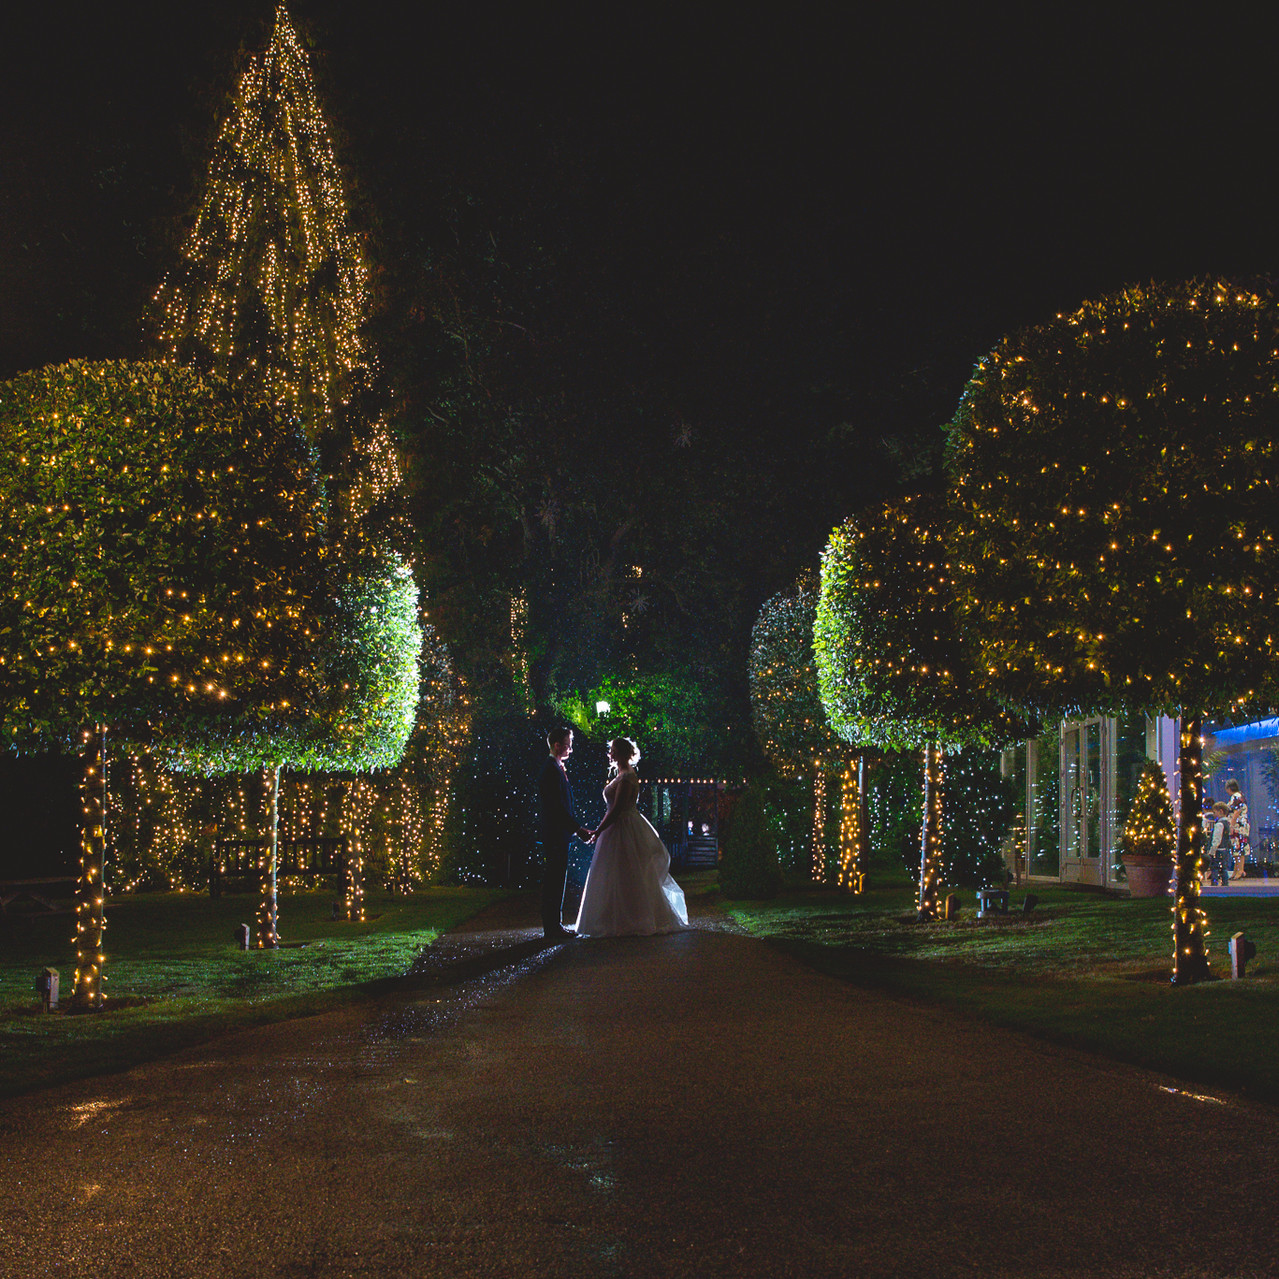 Fay Wedding - Thursford Collection at the Garden Pavilion, Norfolk. Night shots